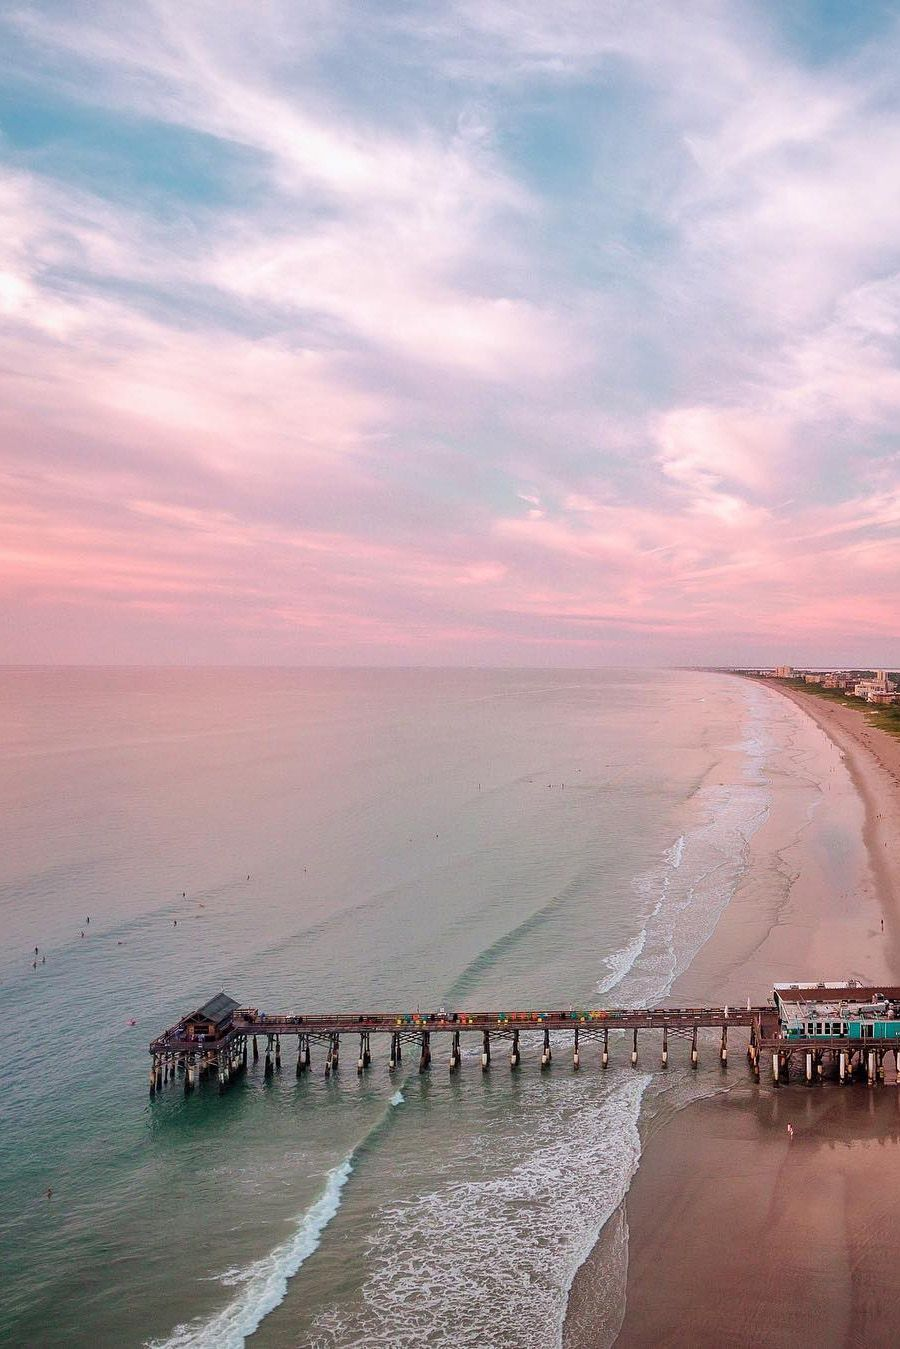 Abovearth Untitled By Seascaping Ocean Scenes Beach Scenery